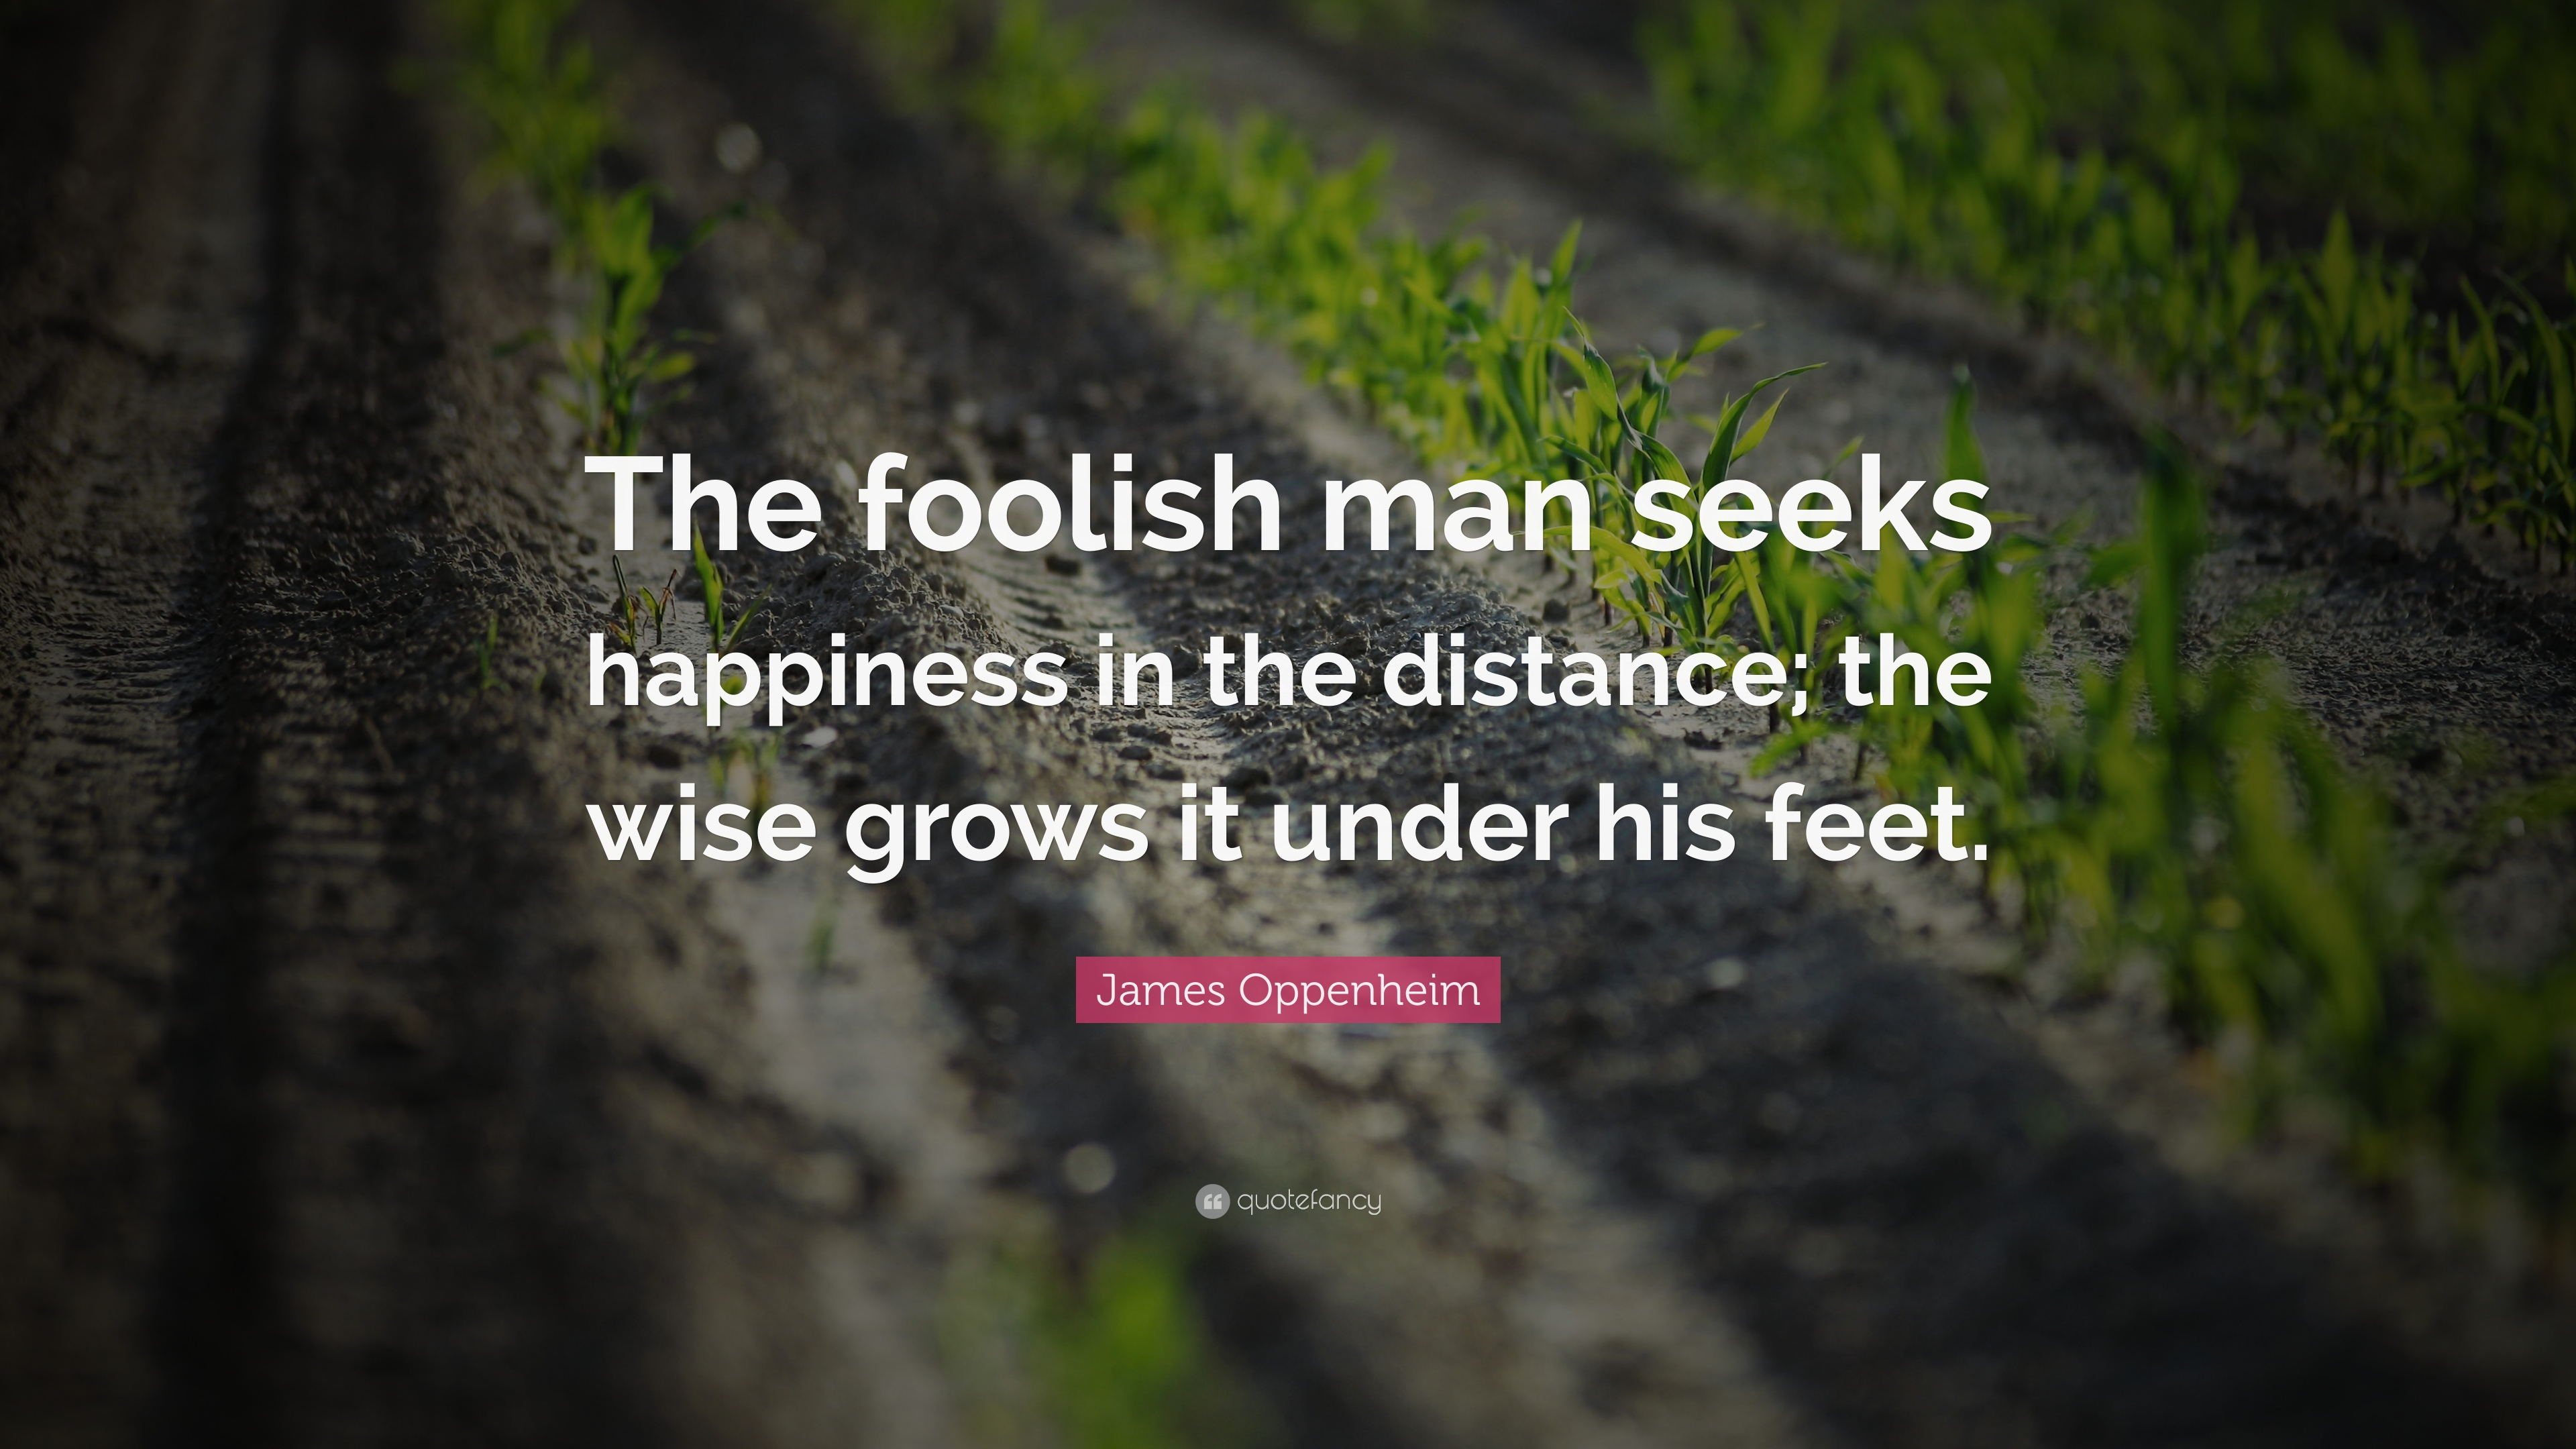 Foolish man quotes